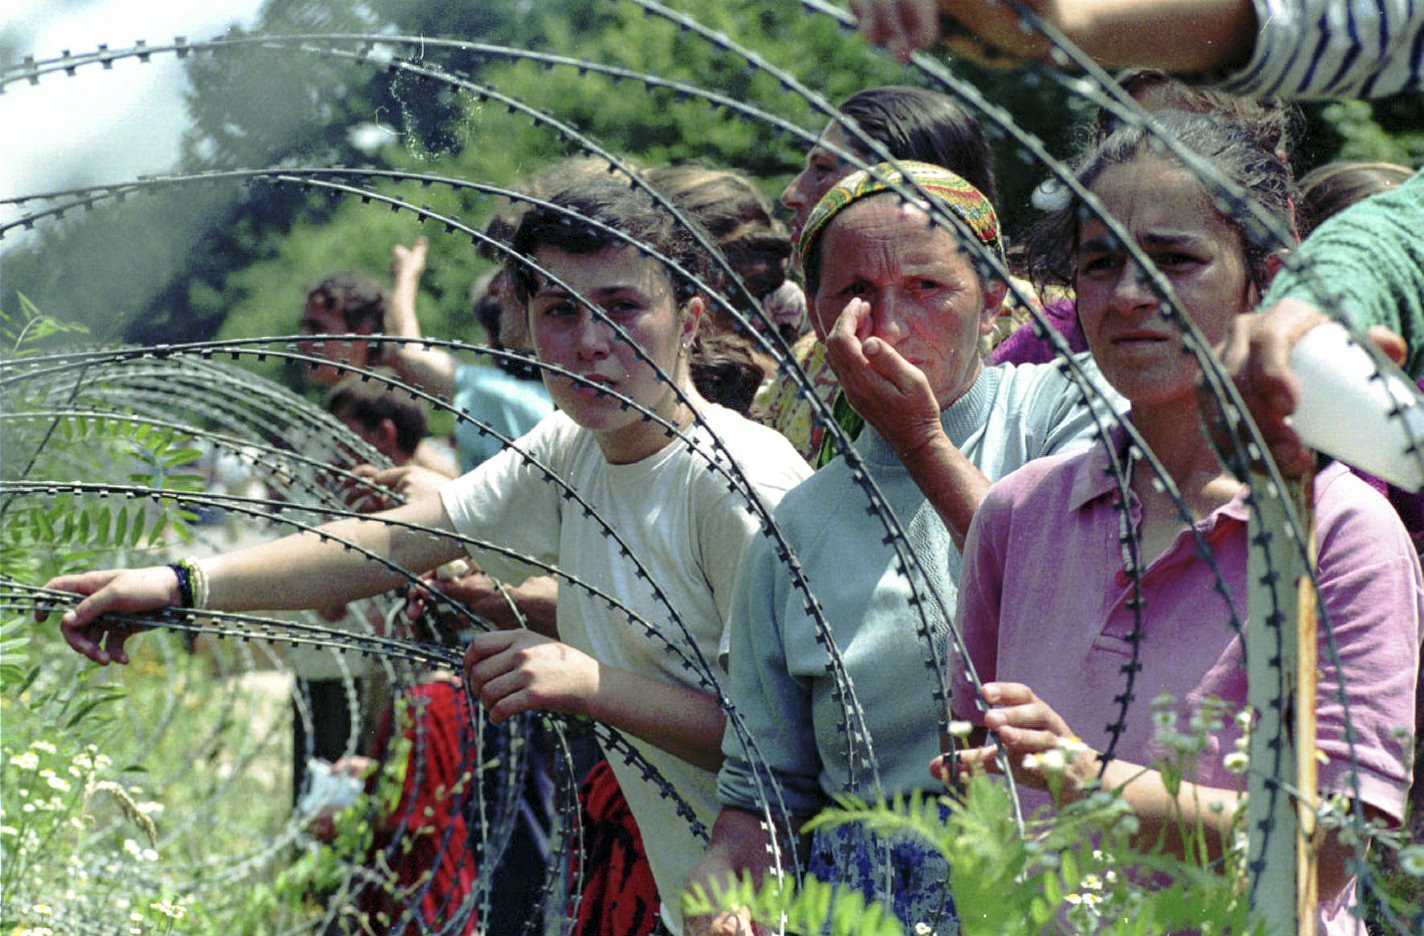 FILE- In this Thursday, July 13, 1995, file picture, refugees from Srebrenica look through the razor-wire at a UN base, outside Tuzla.  Survivors of the genocide in the eastern Bosnian town of Srebrenica, mainly women, will on Saturday July 11, 2020, commemorate the 25th anniversary of the slaughter of their fathers and brothers, husbands and sons.  At least 8,000 mostly Muslim men and boys were chased through woods in and around Srebrenica by Serb troops in what is considered the worst carnage of civilians in Europe since World War II. The slaughter was also the only atrocity of the brutal war that has been confirmed an act of genocide.(AP Photo/Darko Bandic, File)